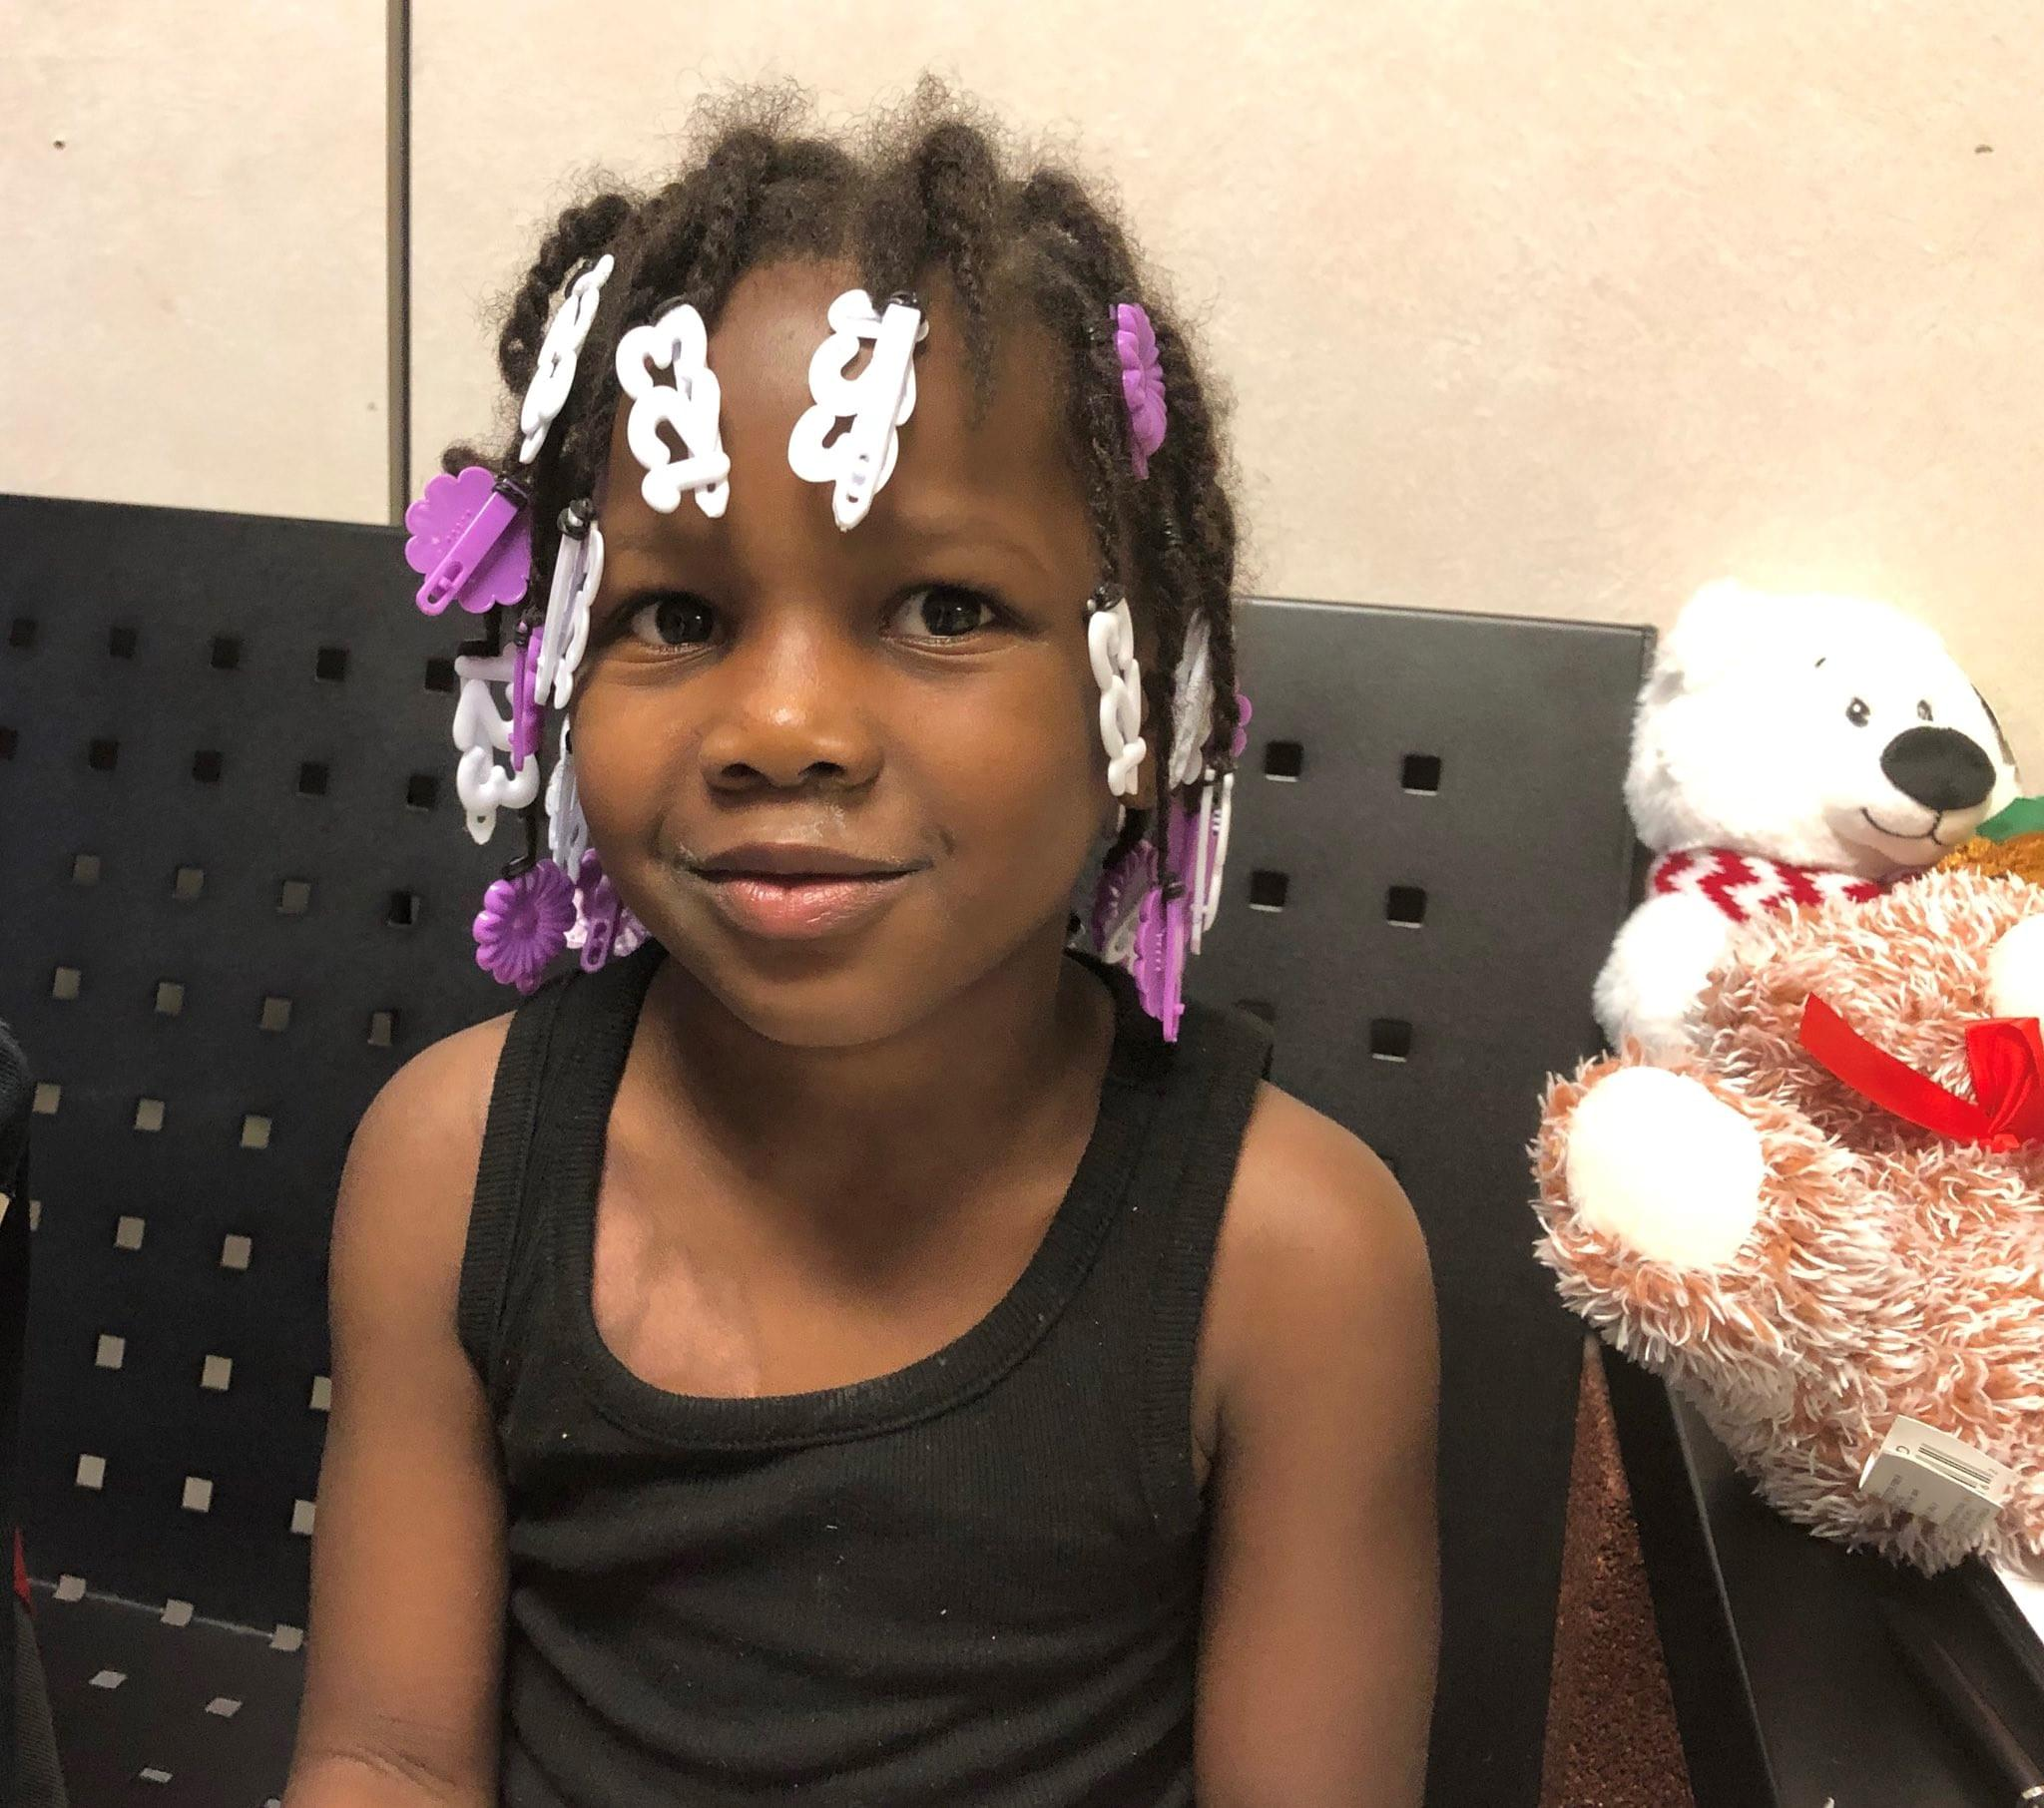 No Charges Will be Filed in Unsupervised Toddler Found in East Knoxville